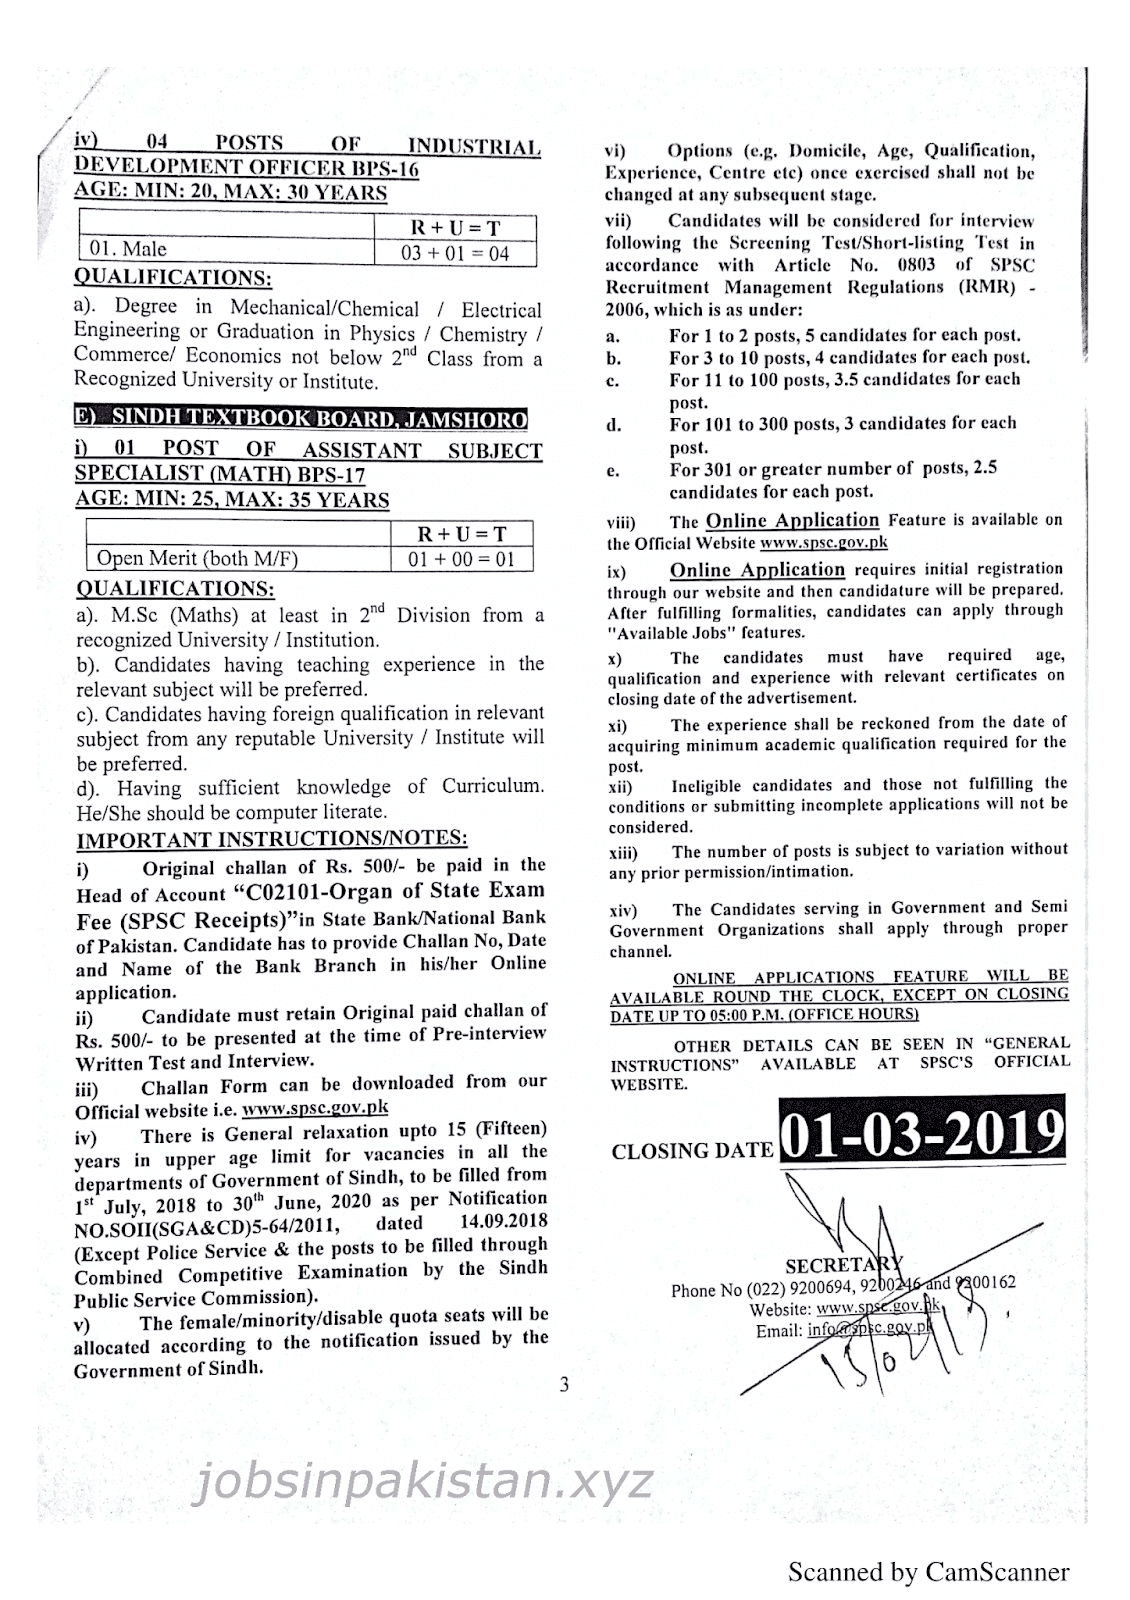 SPSC Advertisement 03/2019 Page No. 3/3